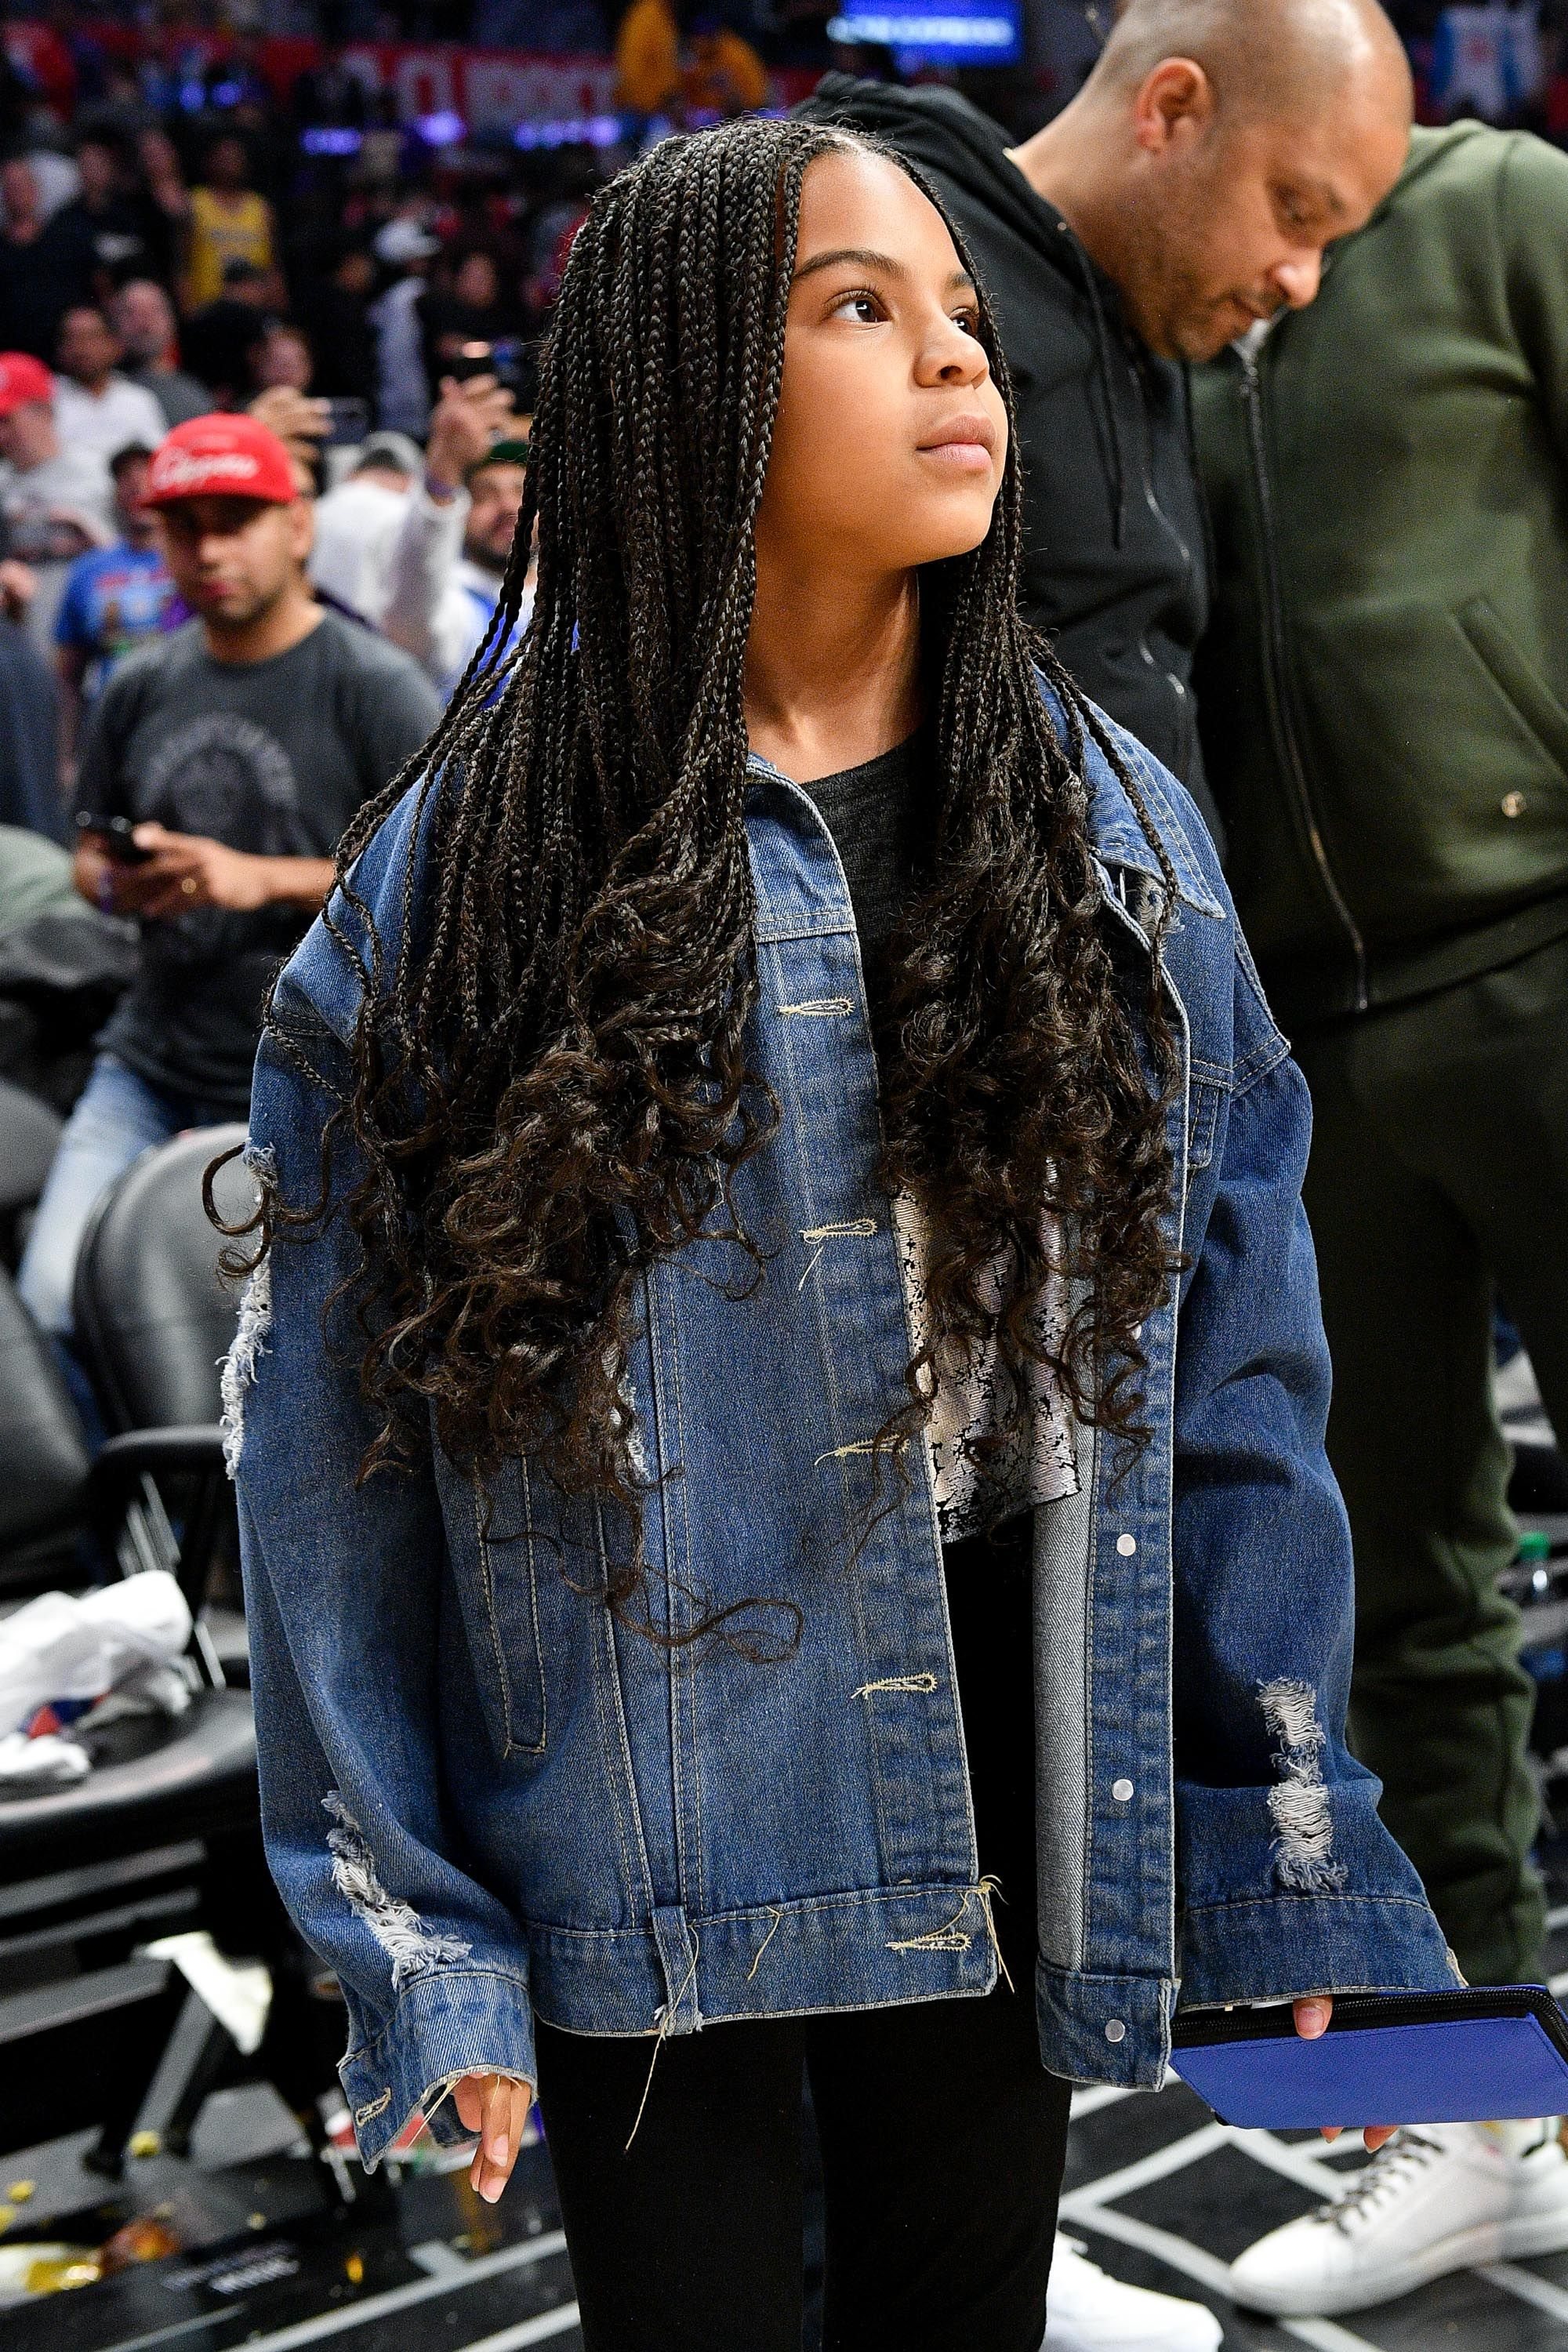 blue ivy carter wore a great outfit